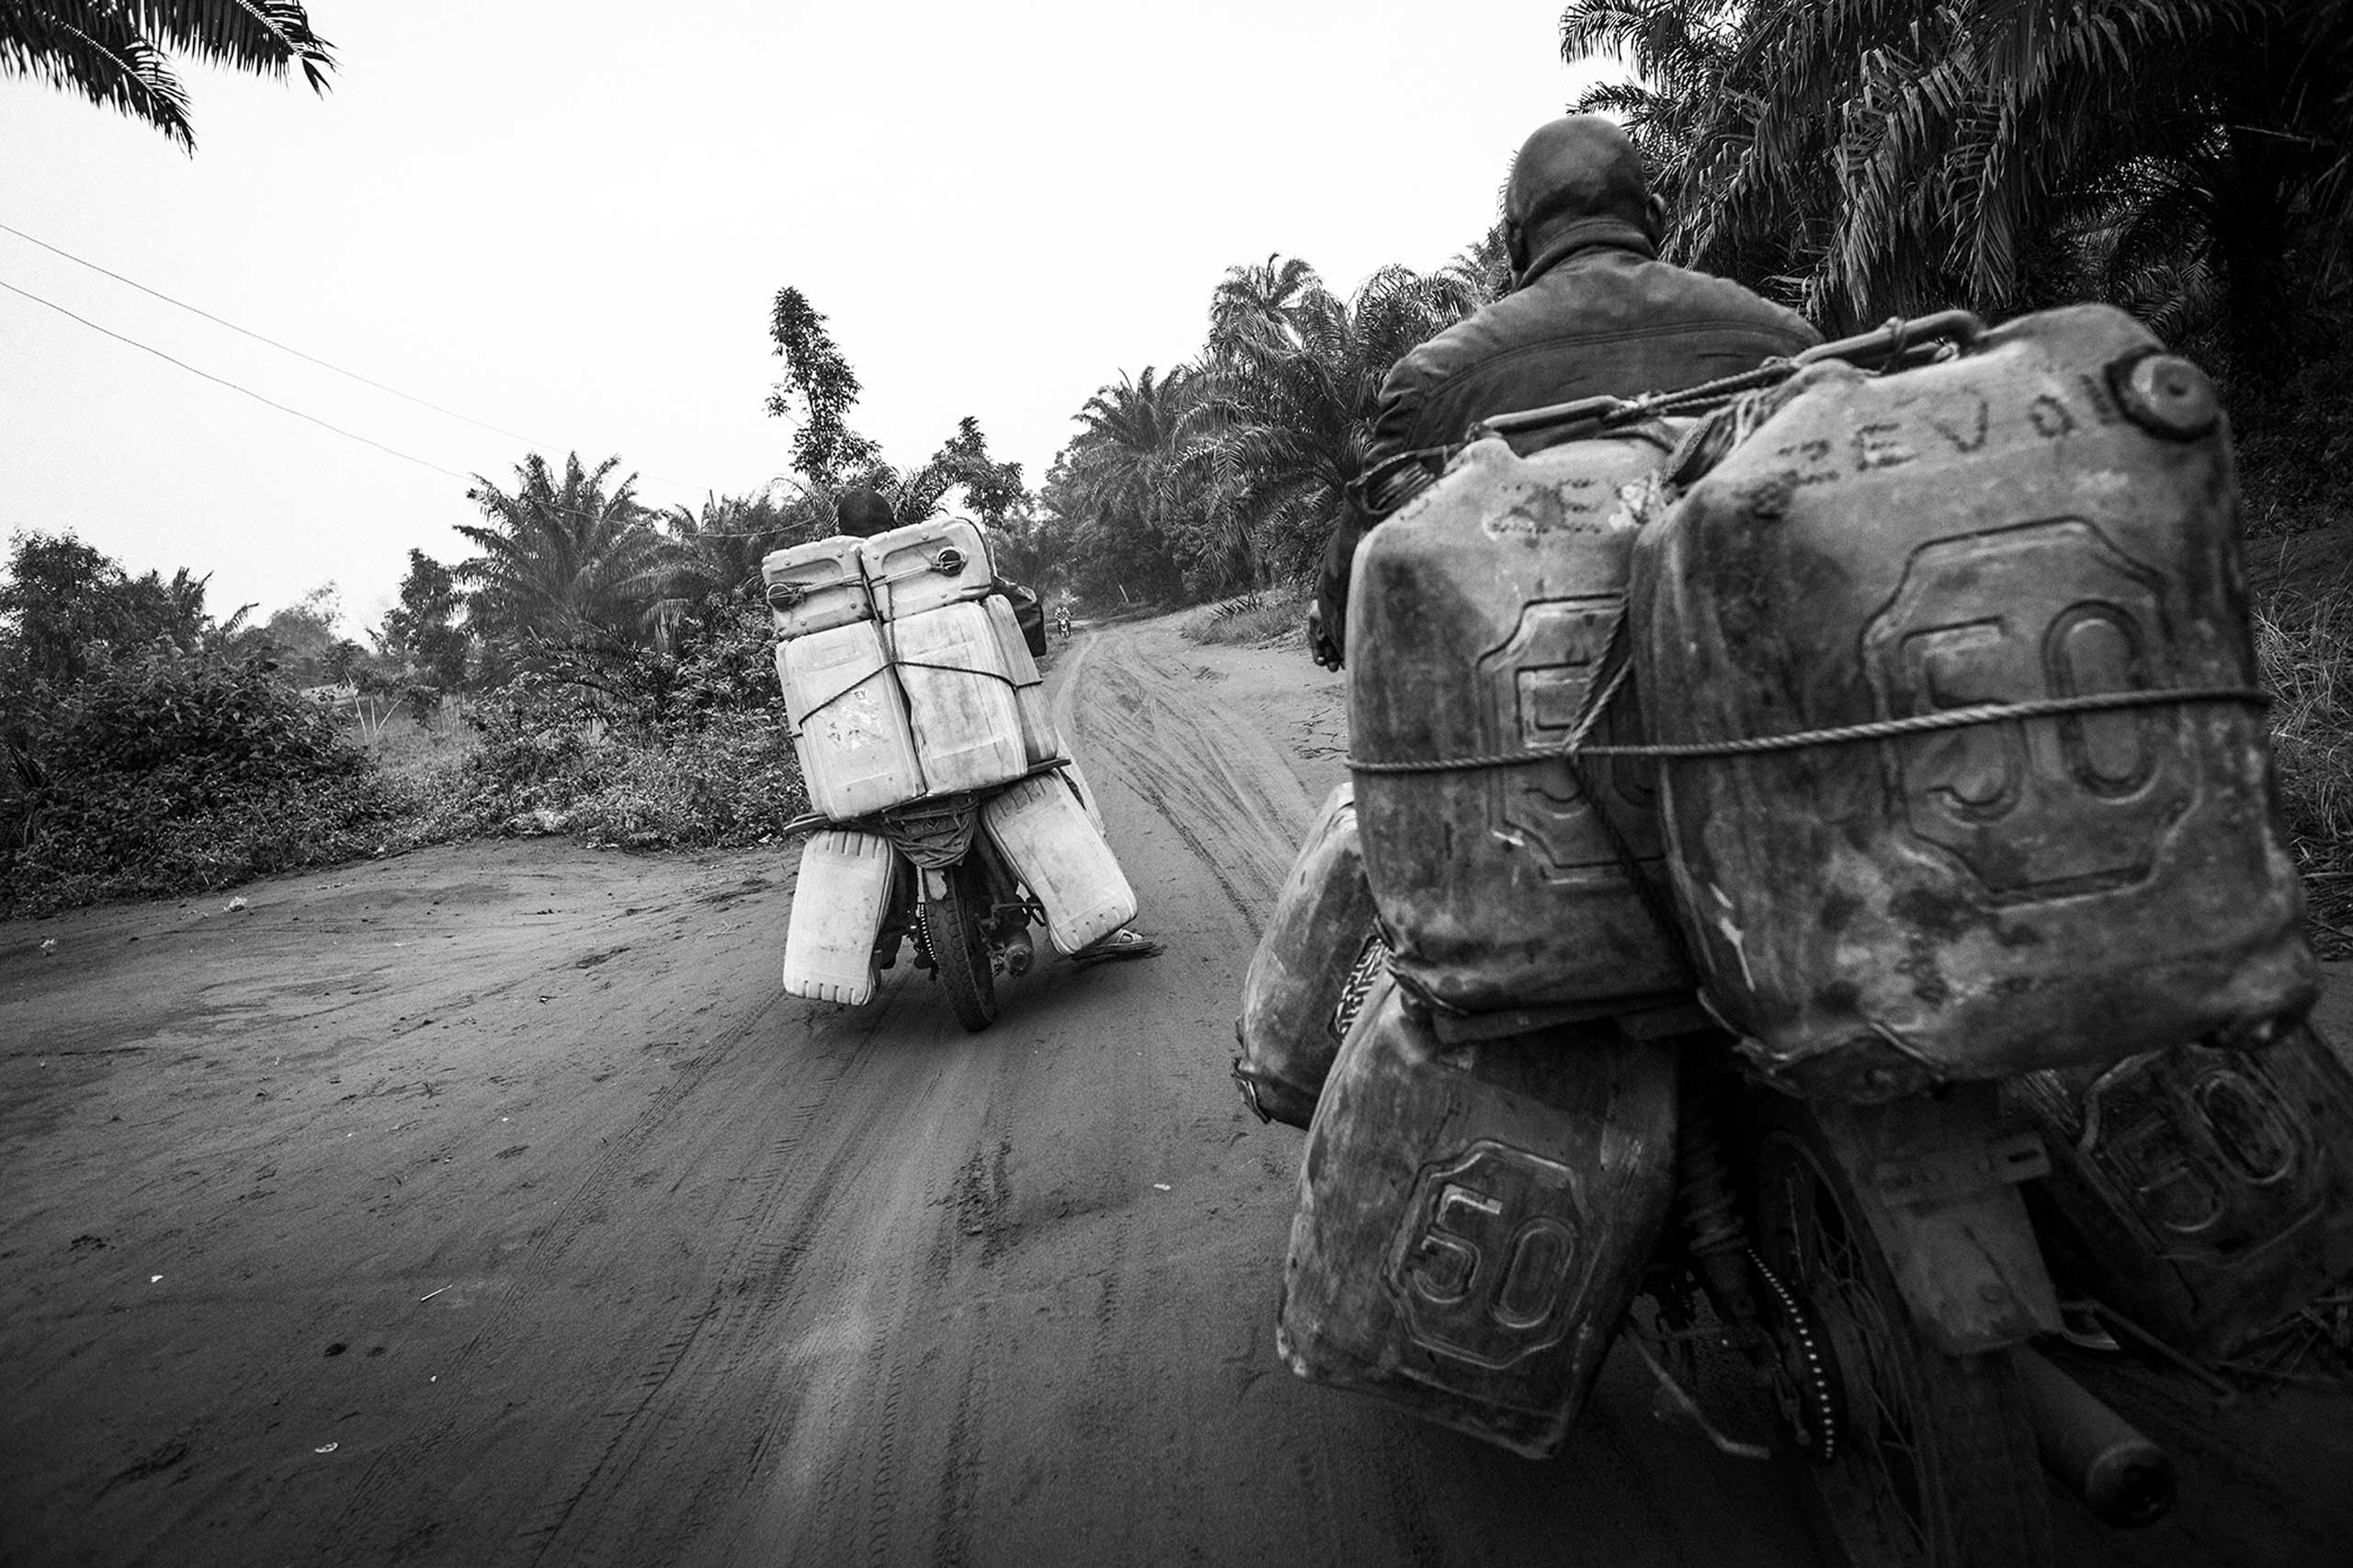 The mission of these kamikazes is to drive the vehicles from the sinuous paths in the jungle to the paved roads where they will sell the petrol they transport.